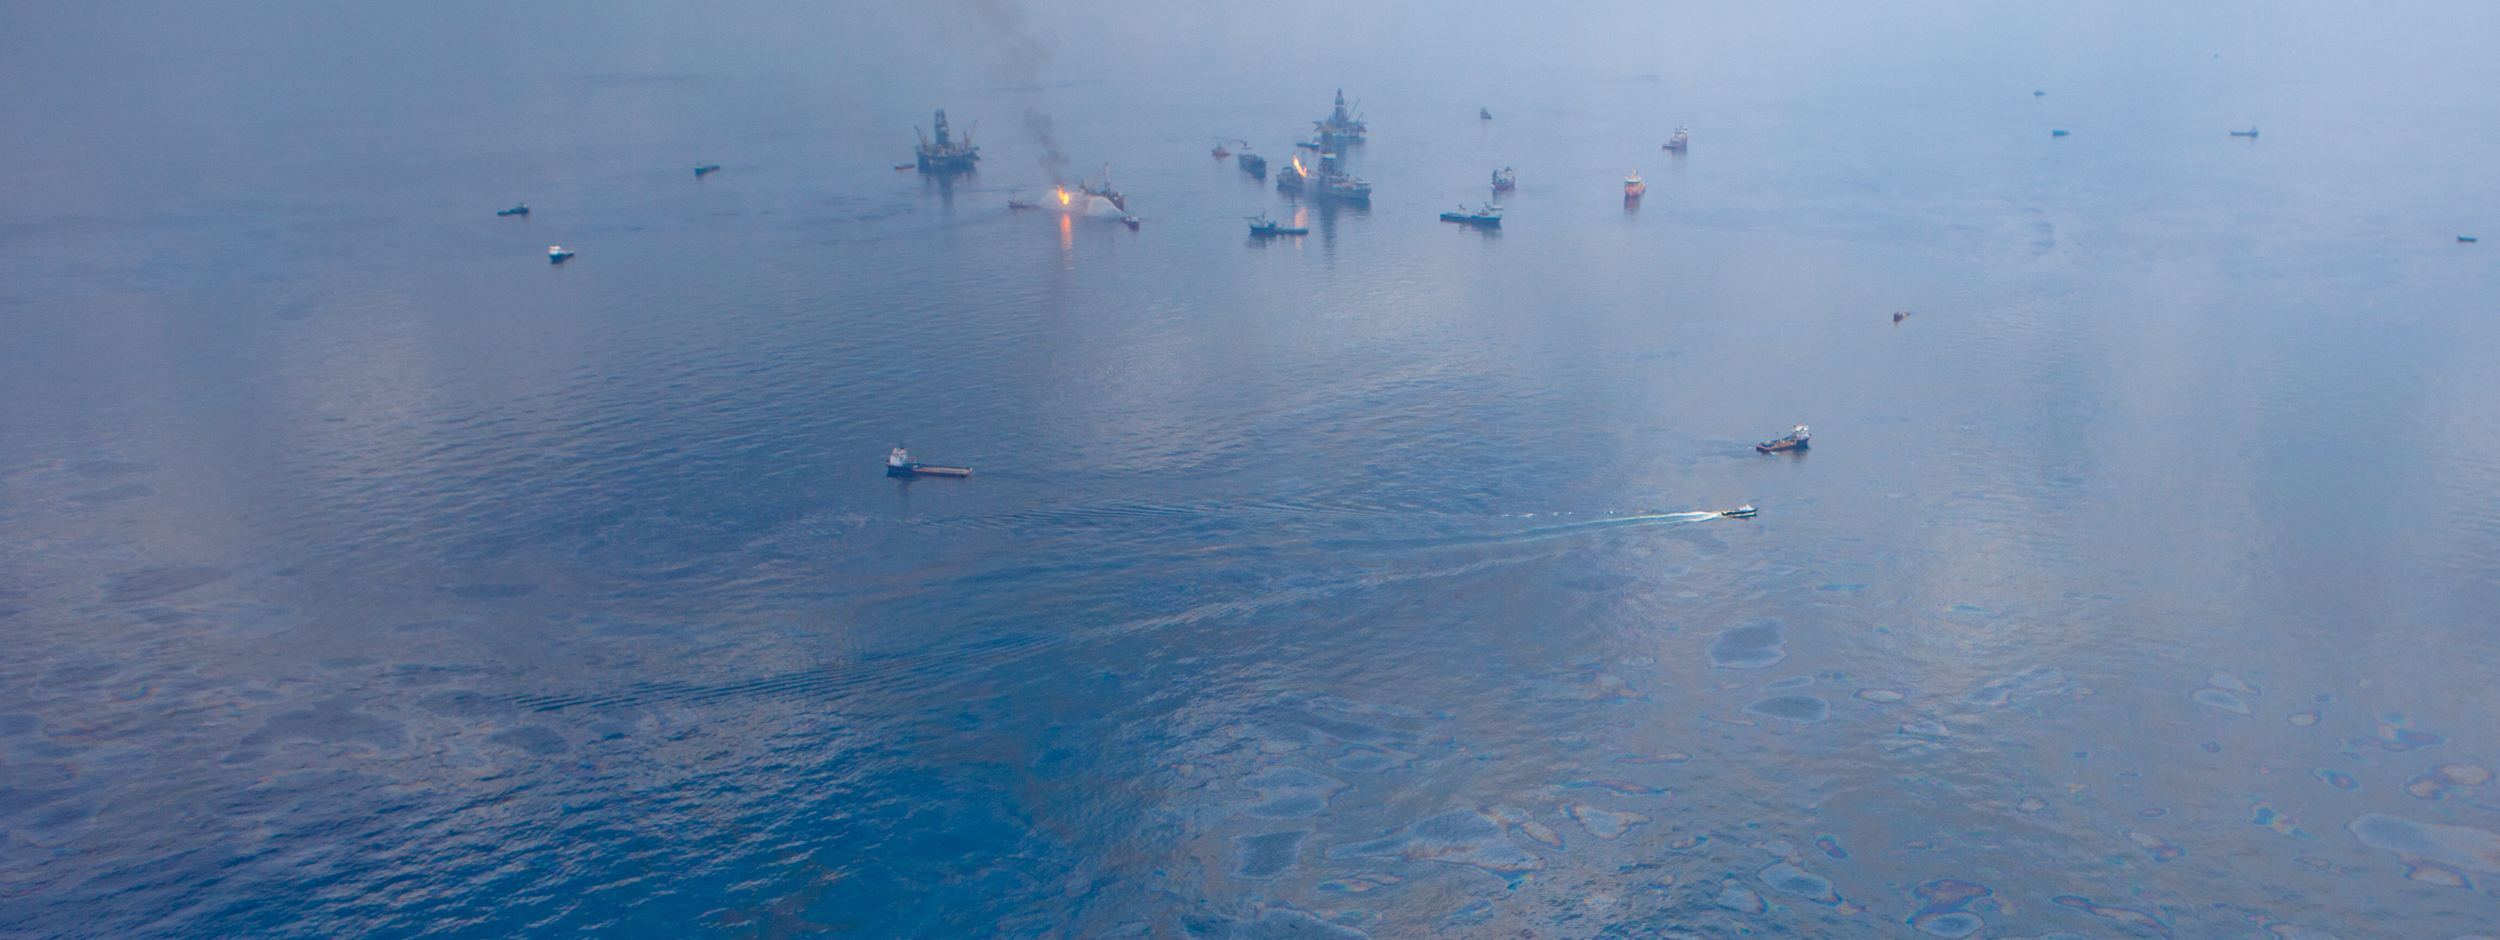 Figure 1. Coming soon to an ocean near you? The Deepwater Horizon oil spill disaster started April 20, 2010. BP did not declare the well sealed until September 19, 2010. Source : Wikipedia